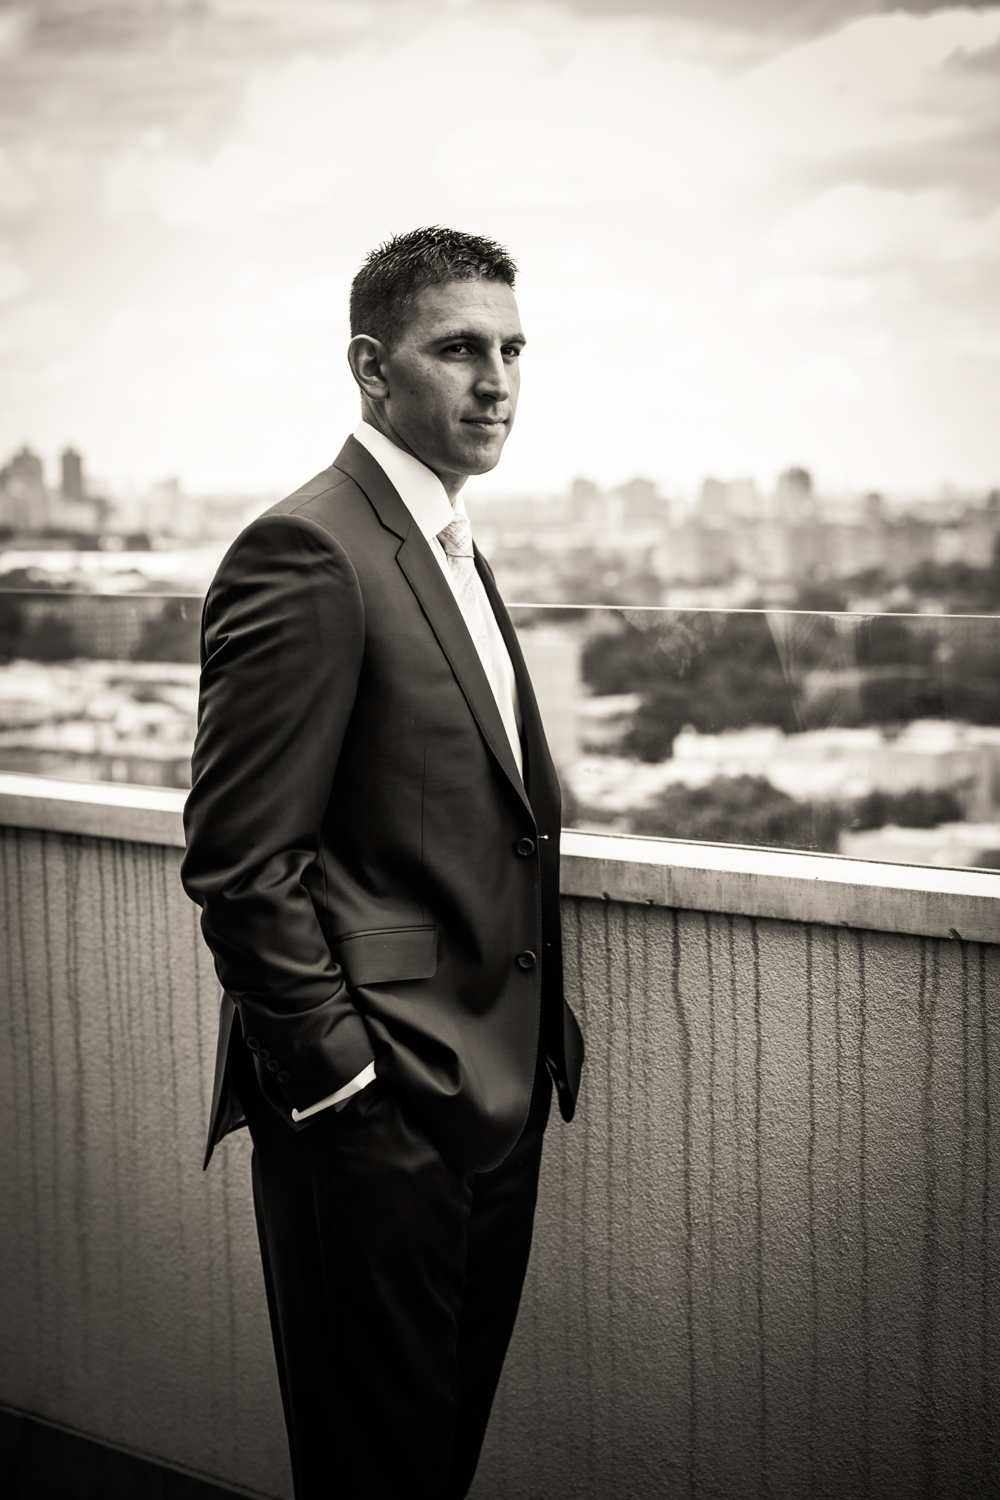 Black and white portrait of groom on rooftop